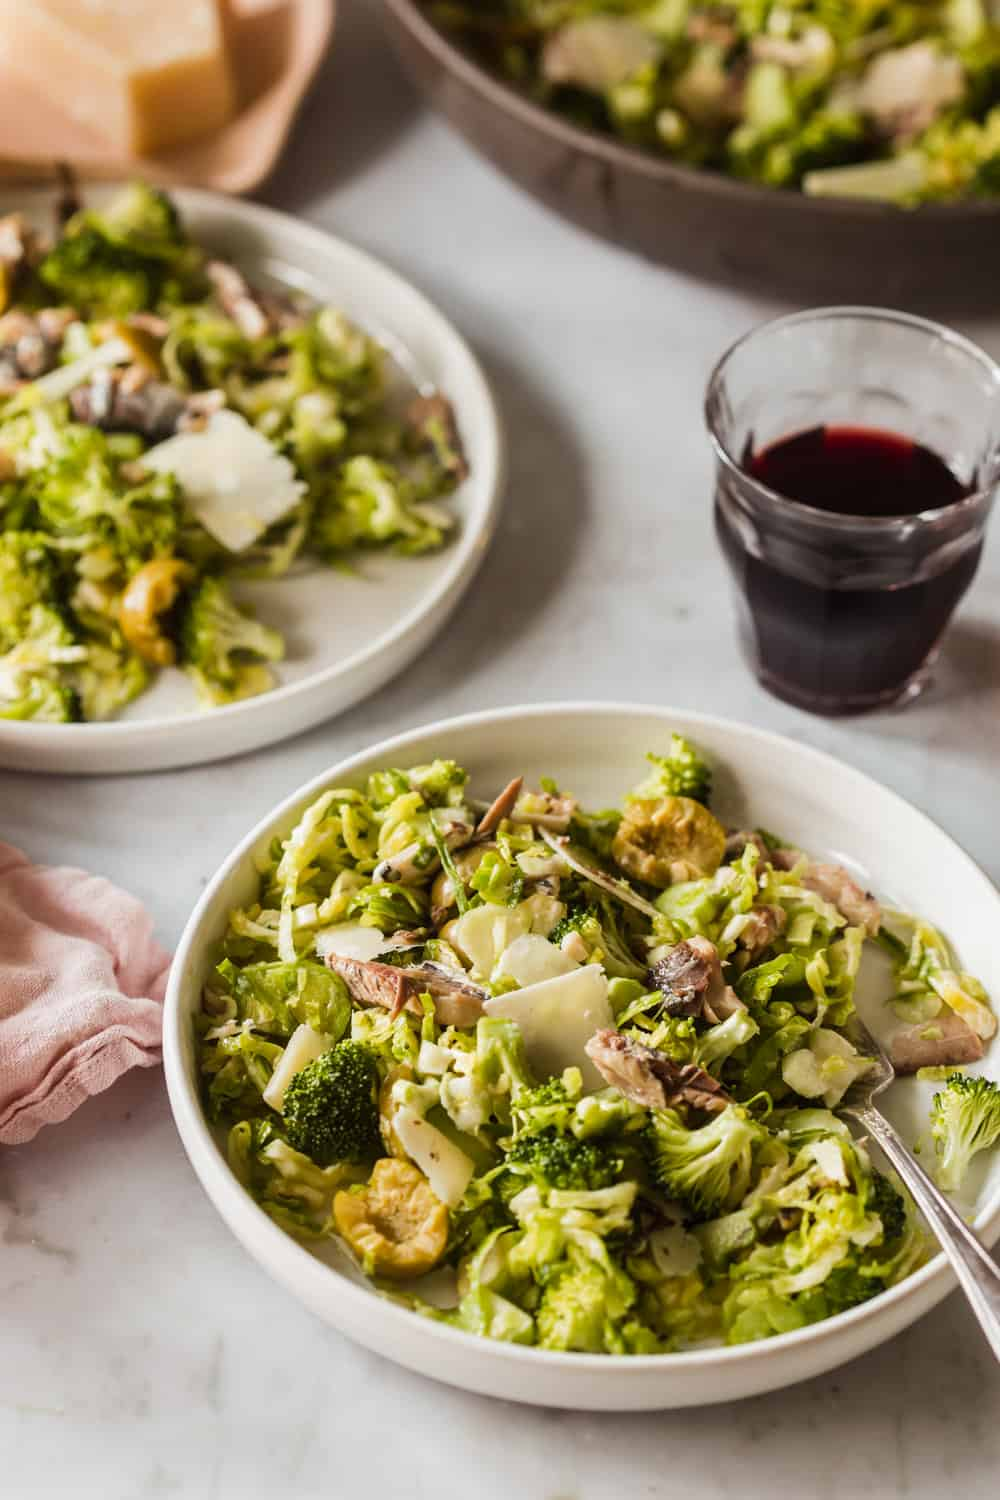 White bowls filled with salad and wine glass